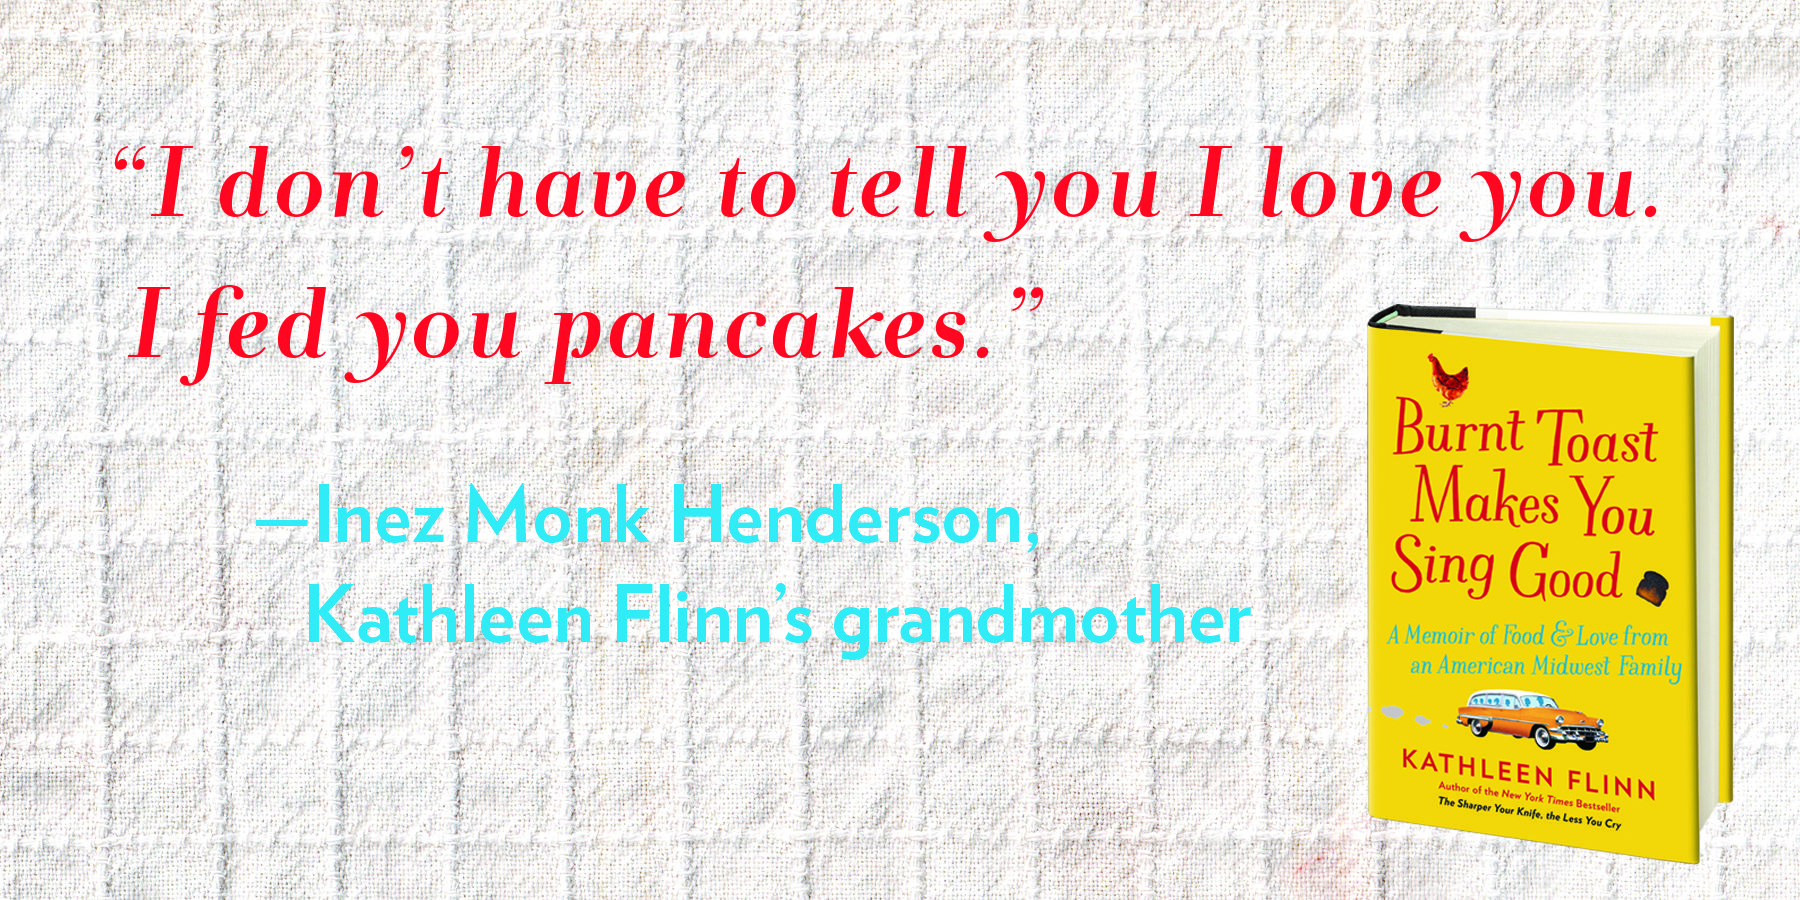 Words to live by from Kathleen Flinn's grandmother, via Burnt Toast Makes You Sing Good.